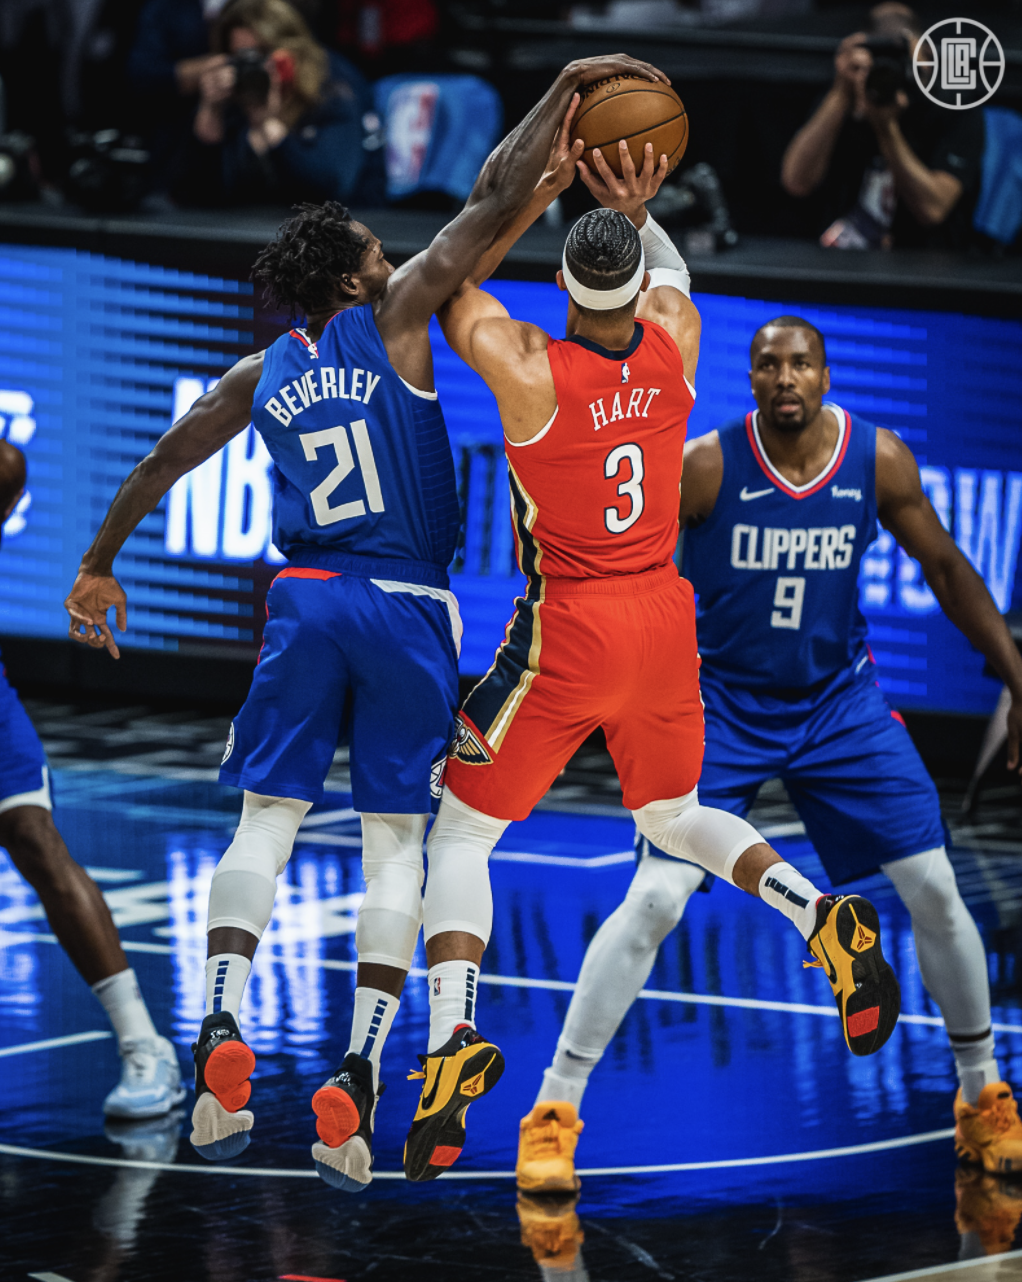 Courtside with Clippers – Week 3